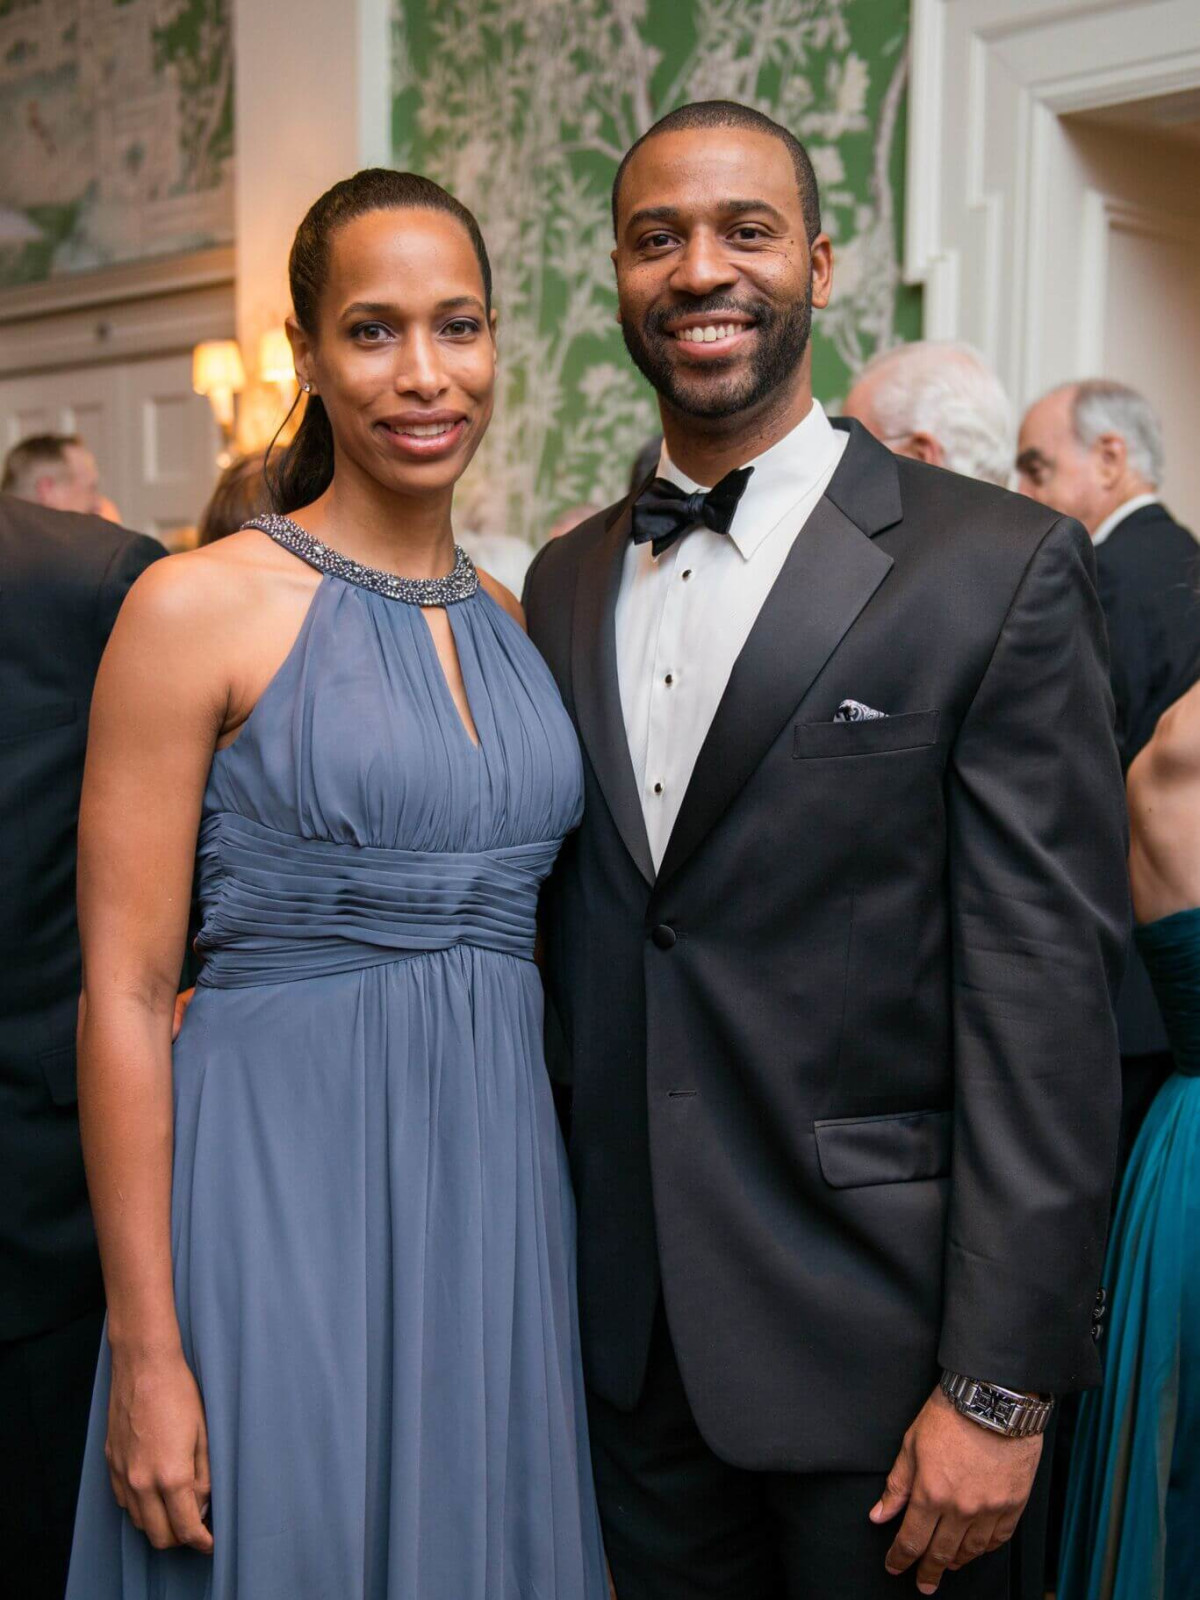 Chelsey Hayes, Kenny Baugh at Rice Honors Gala